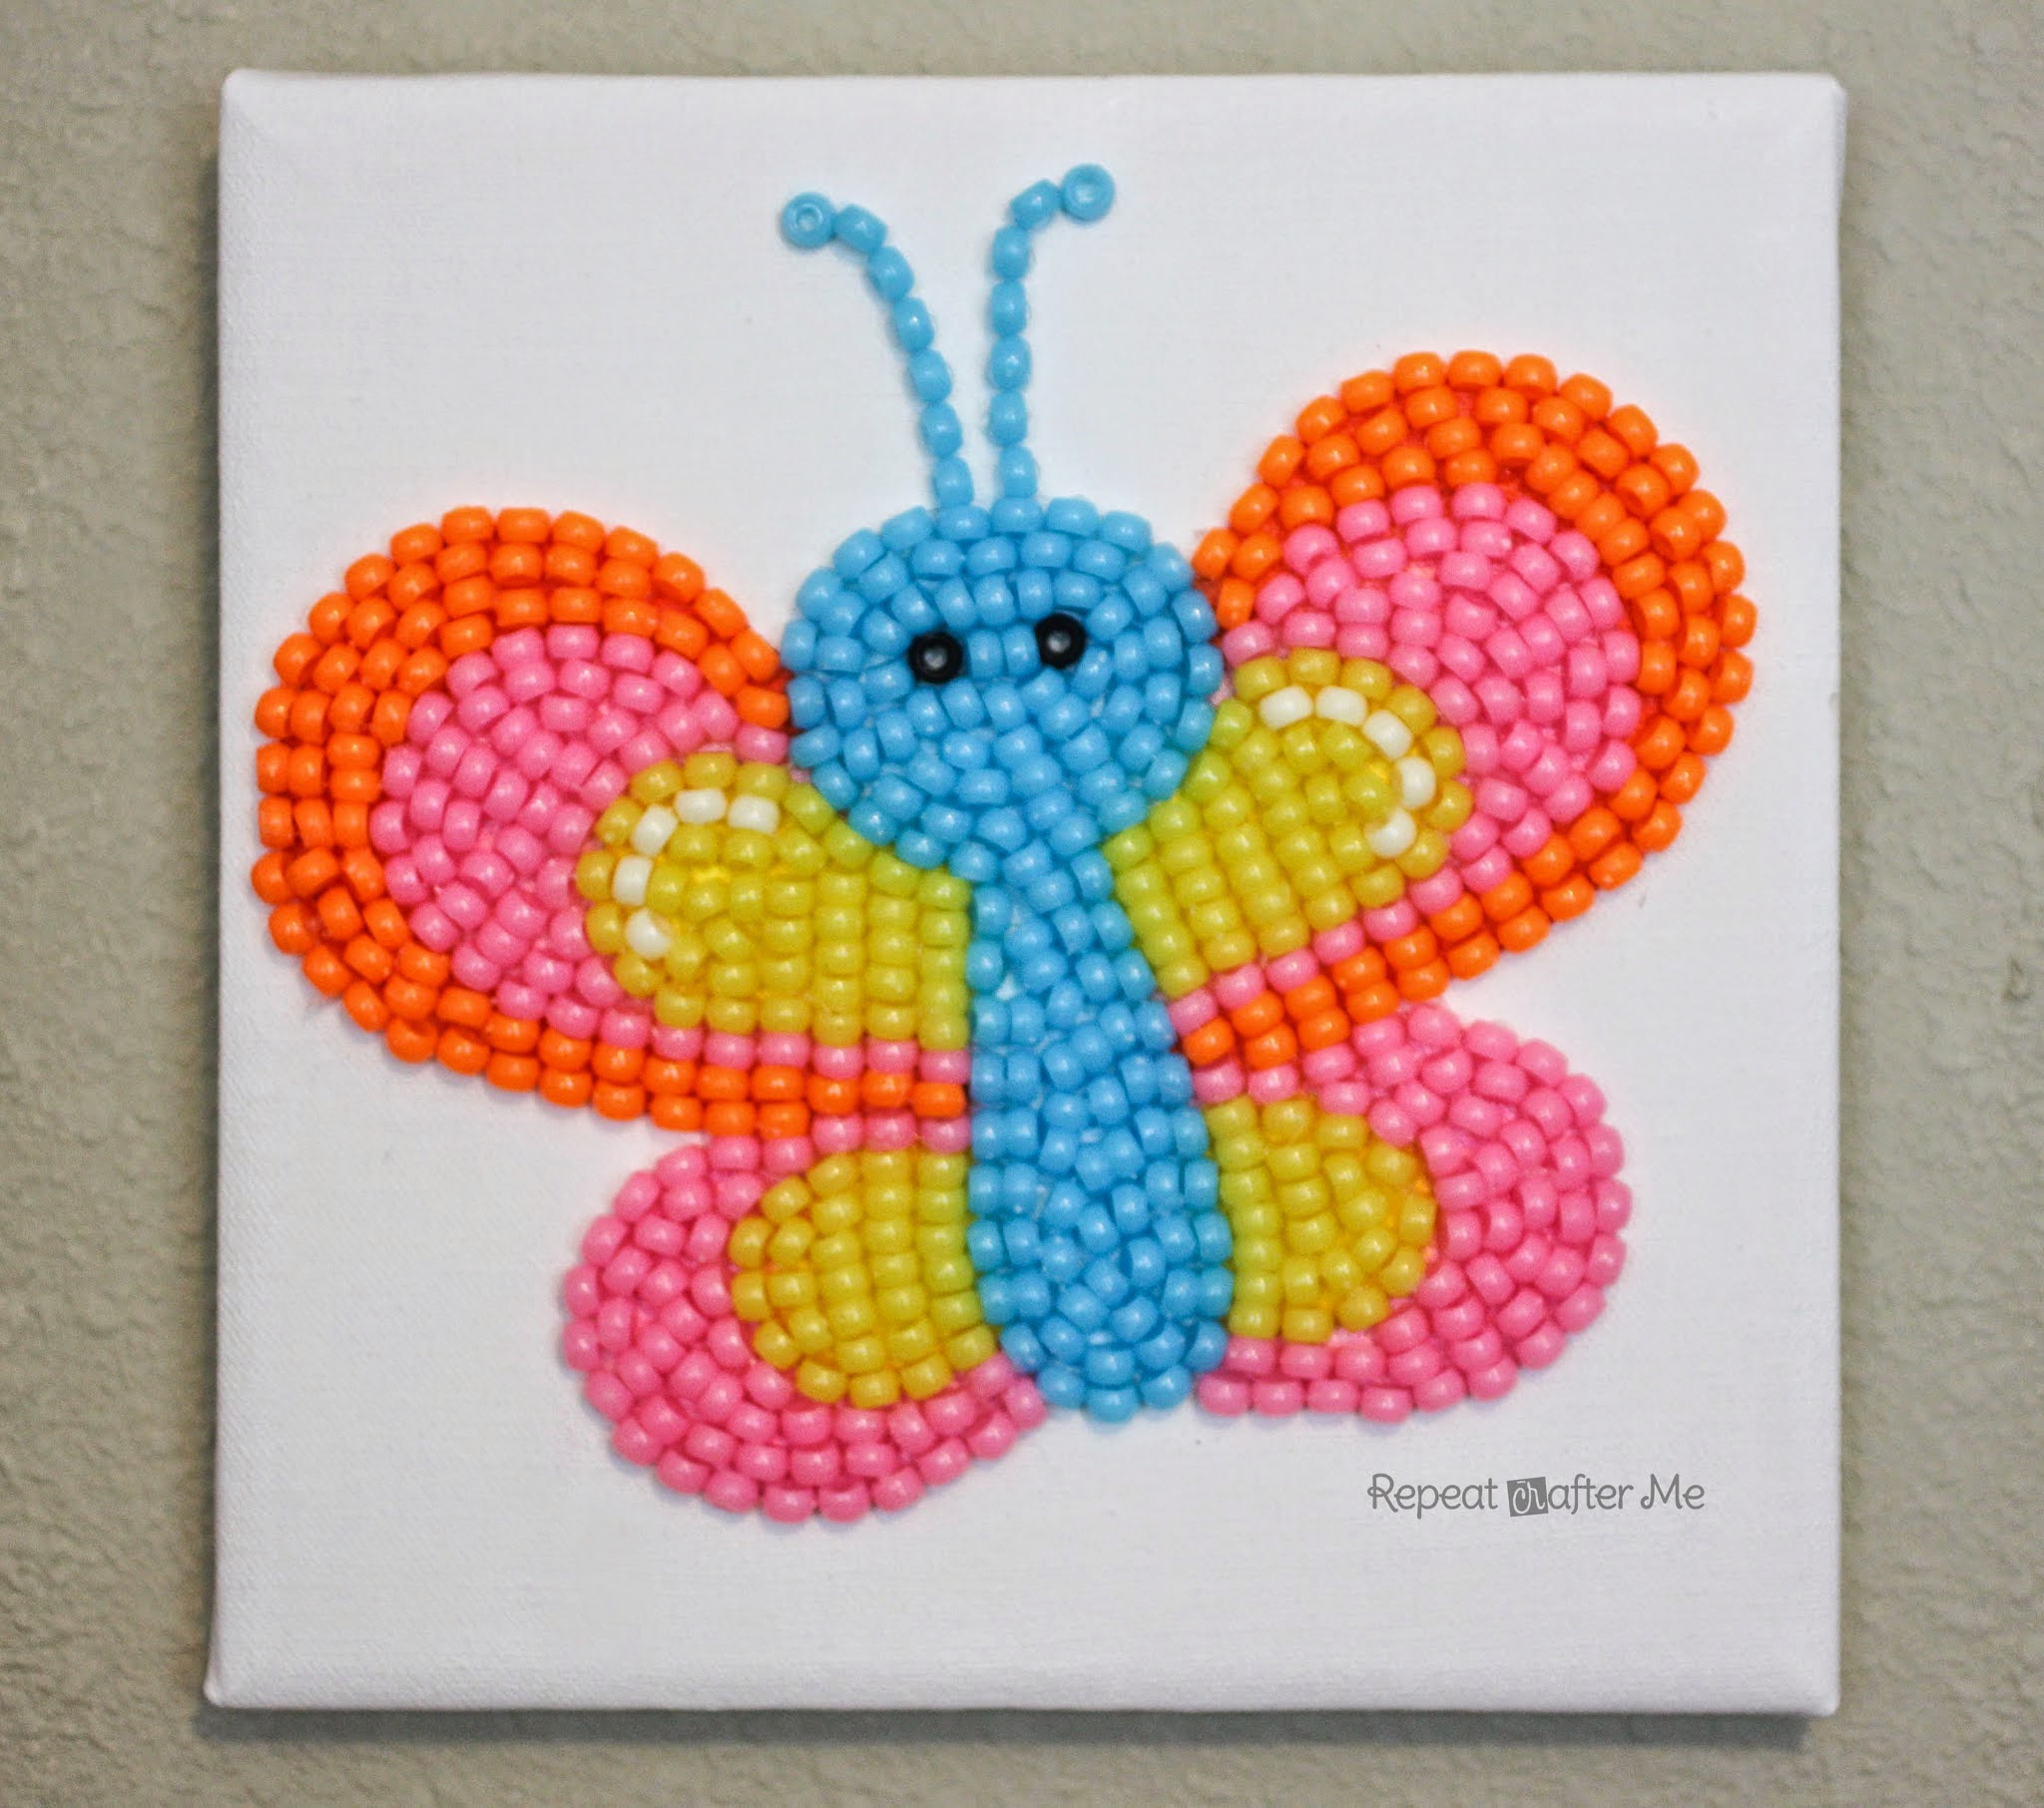 Repeat crafter me pony bead butterfly for Beads for craft projects